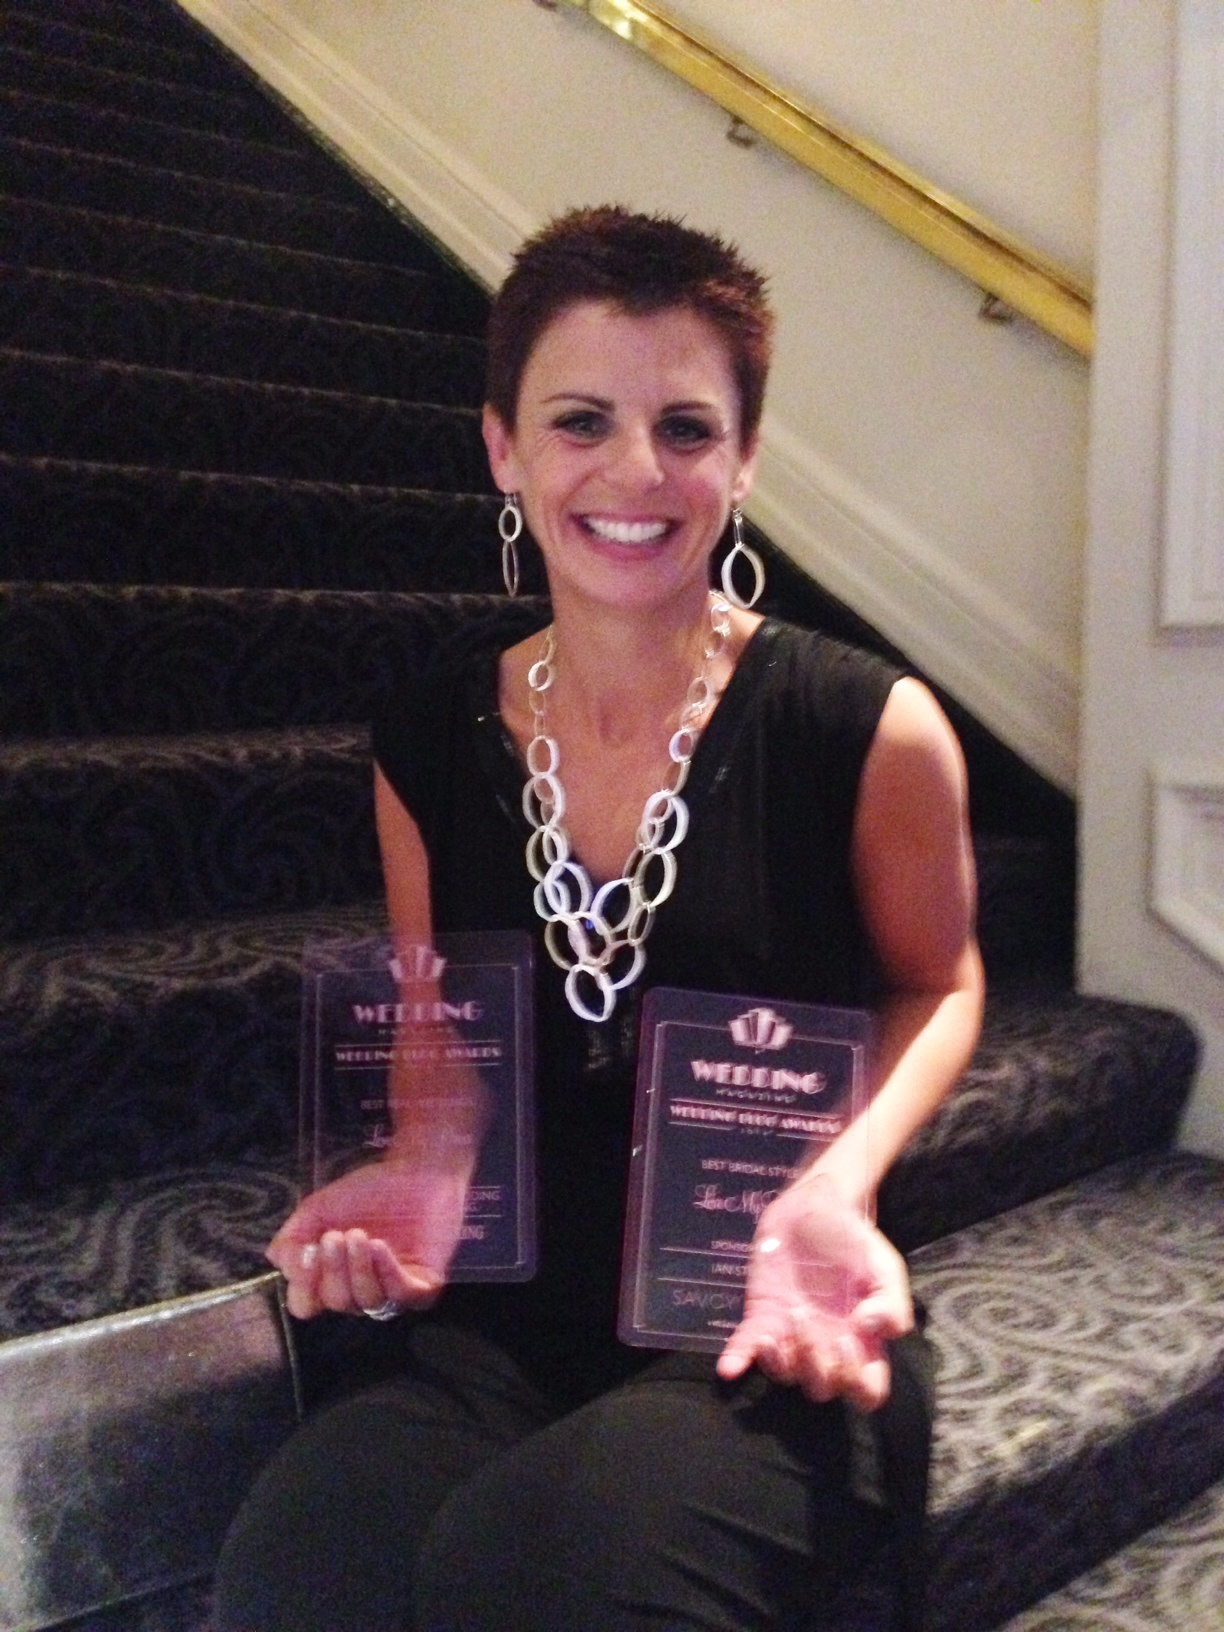 Who doesn't sit on the stairs in The Savoy of a Friday night clutching two awards?